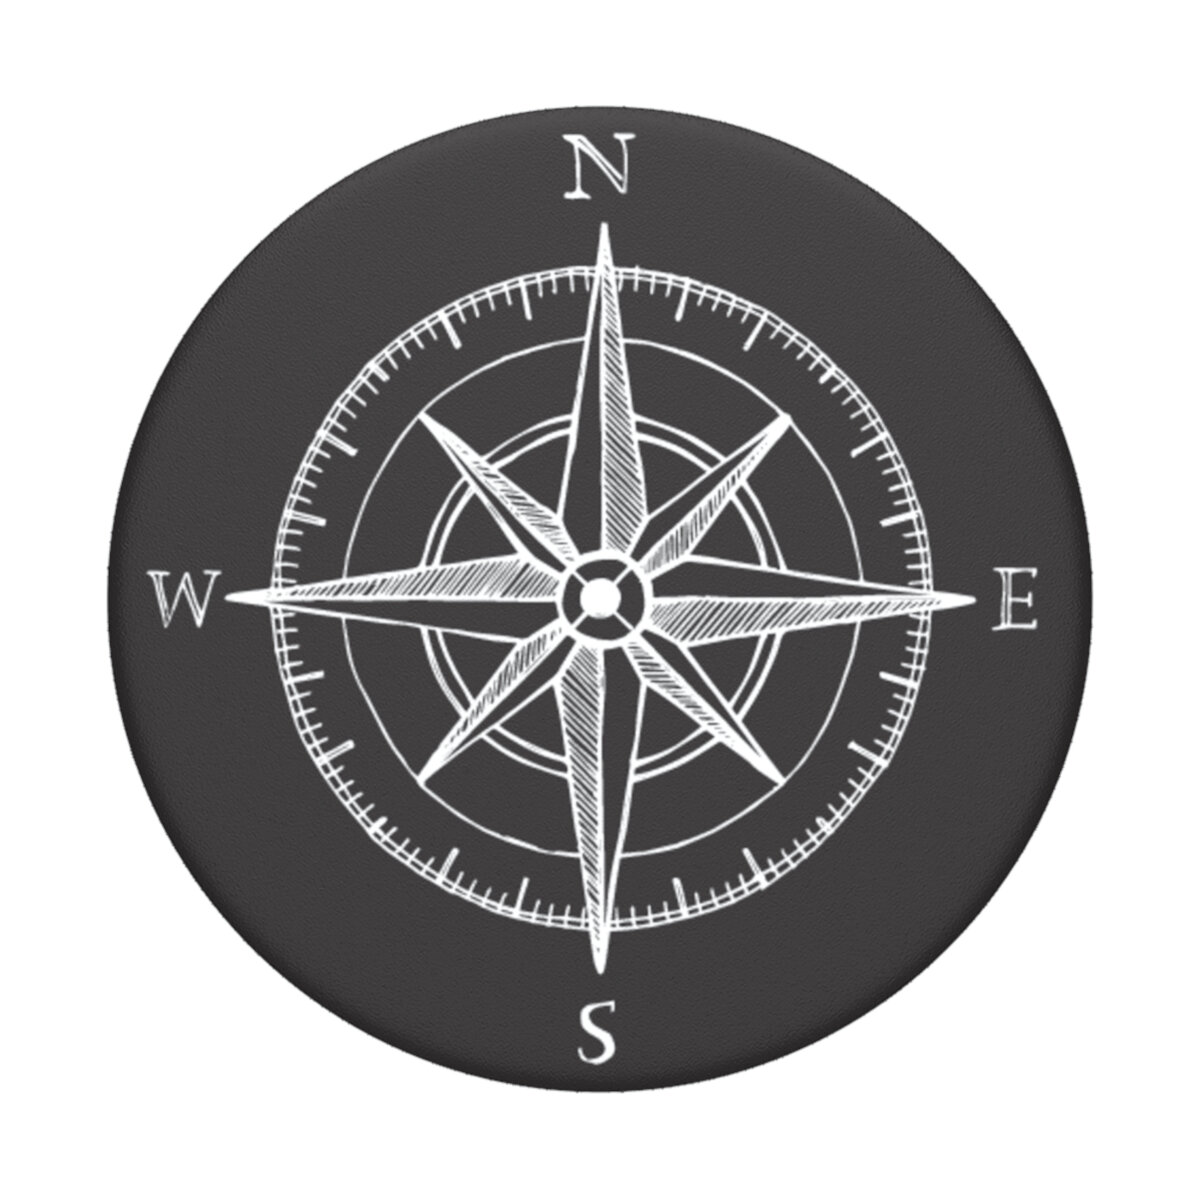 Popgrip-Compass-Main-Image